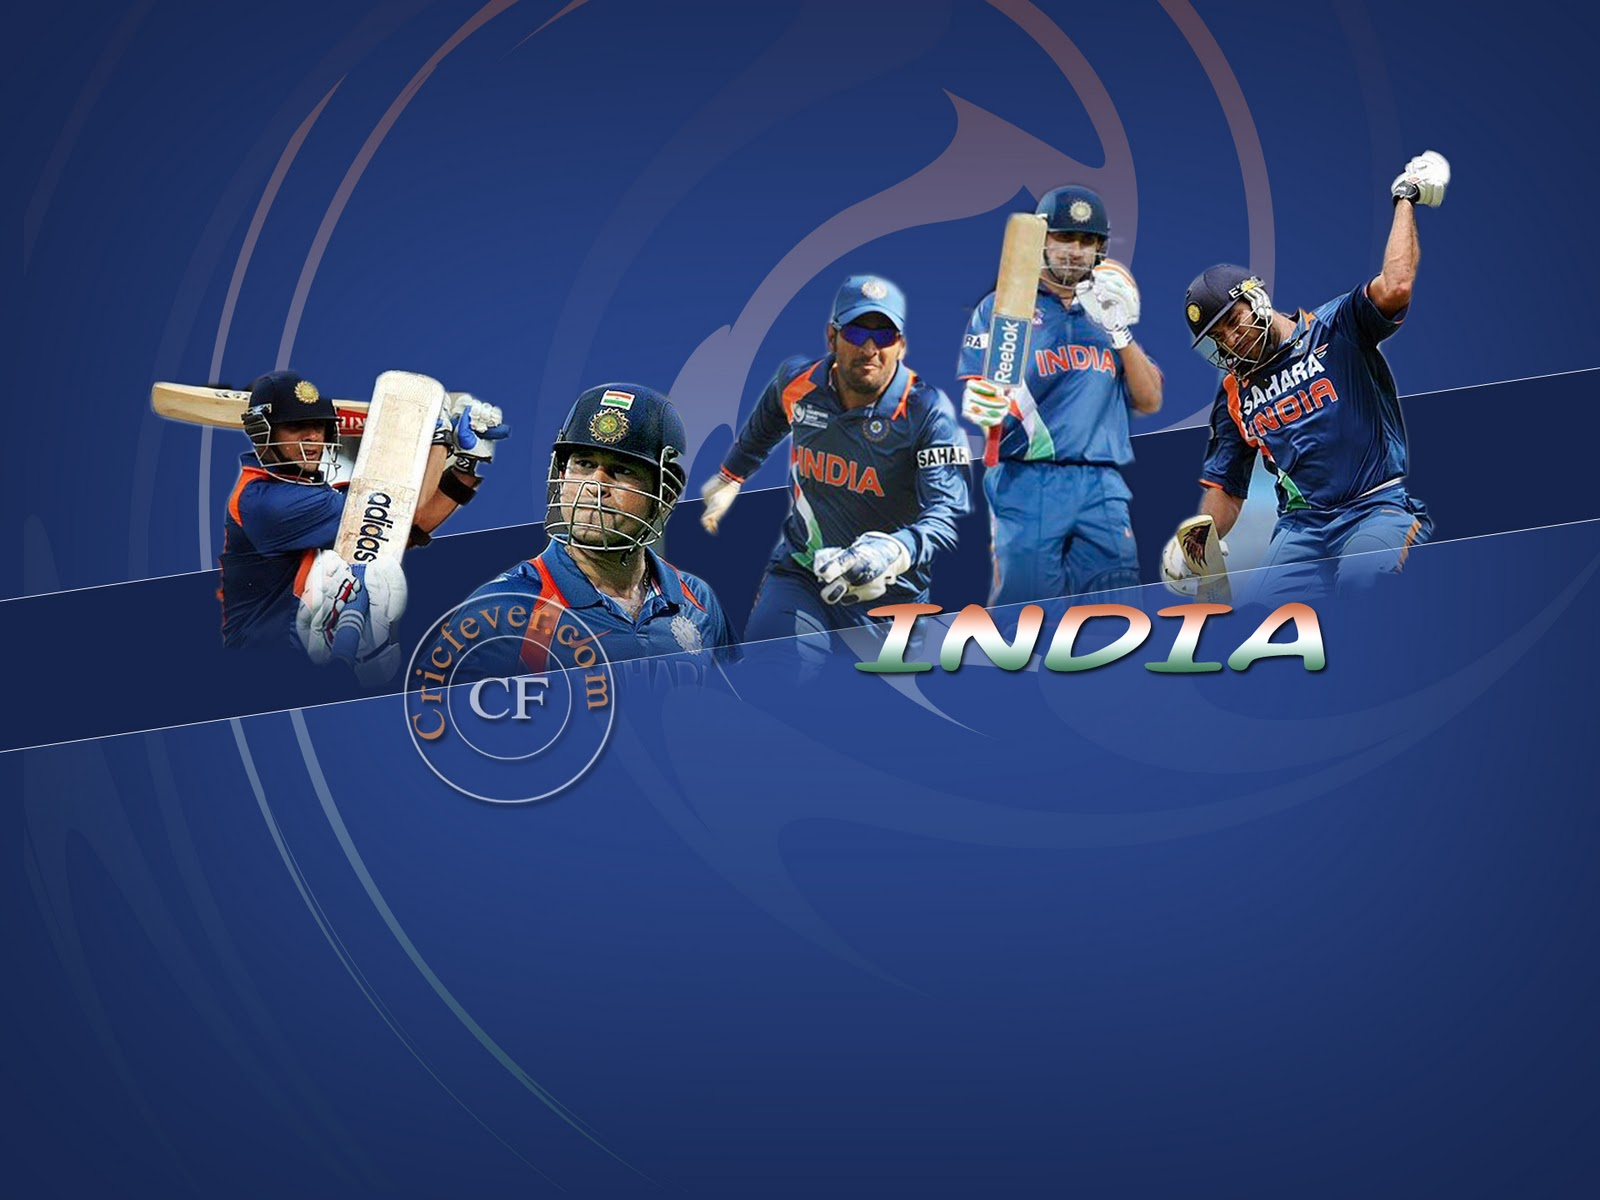 Indian Cricket Hd Wallpapers: All Sports Wallpapers: India Cricket Team Wallpapers